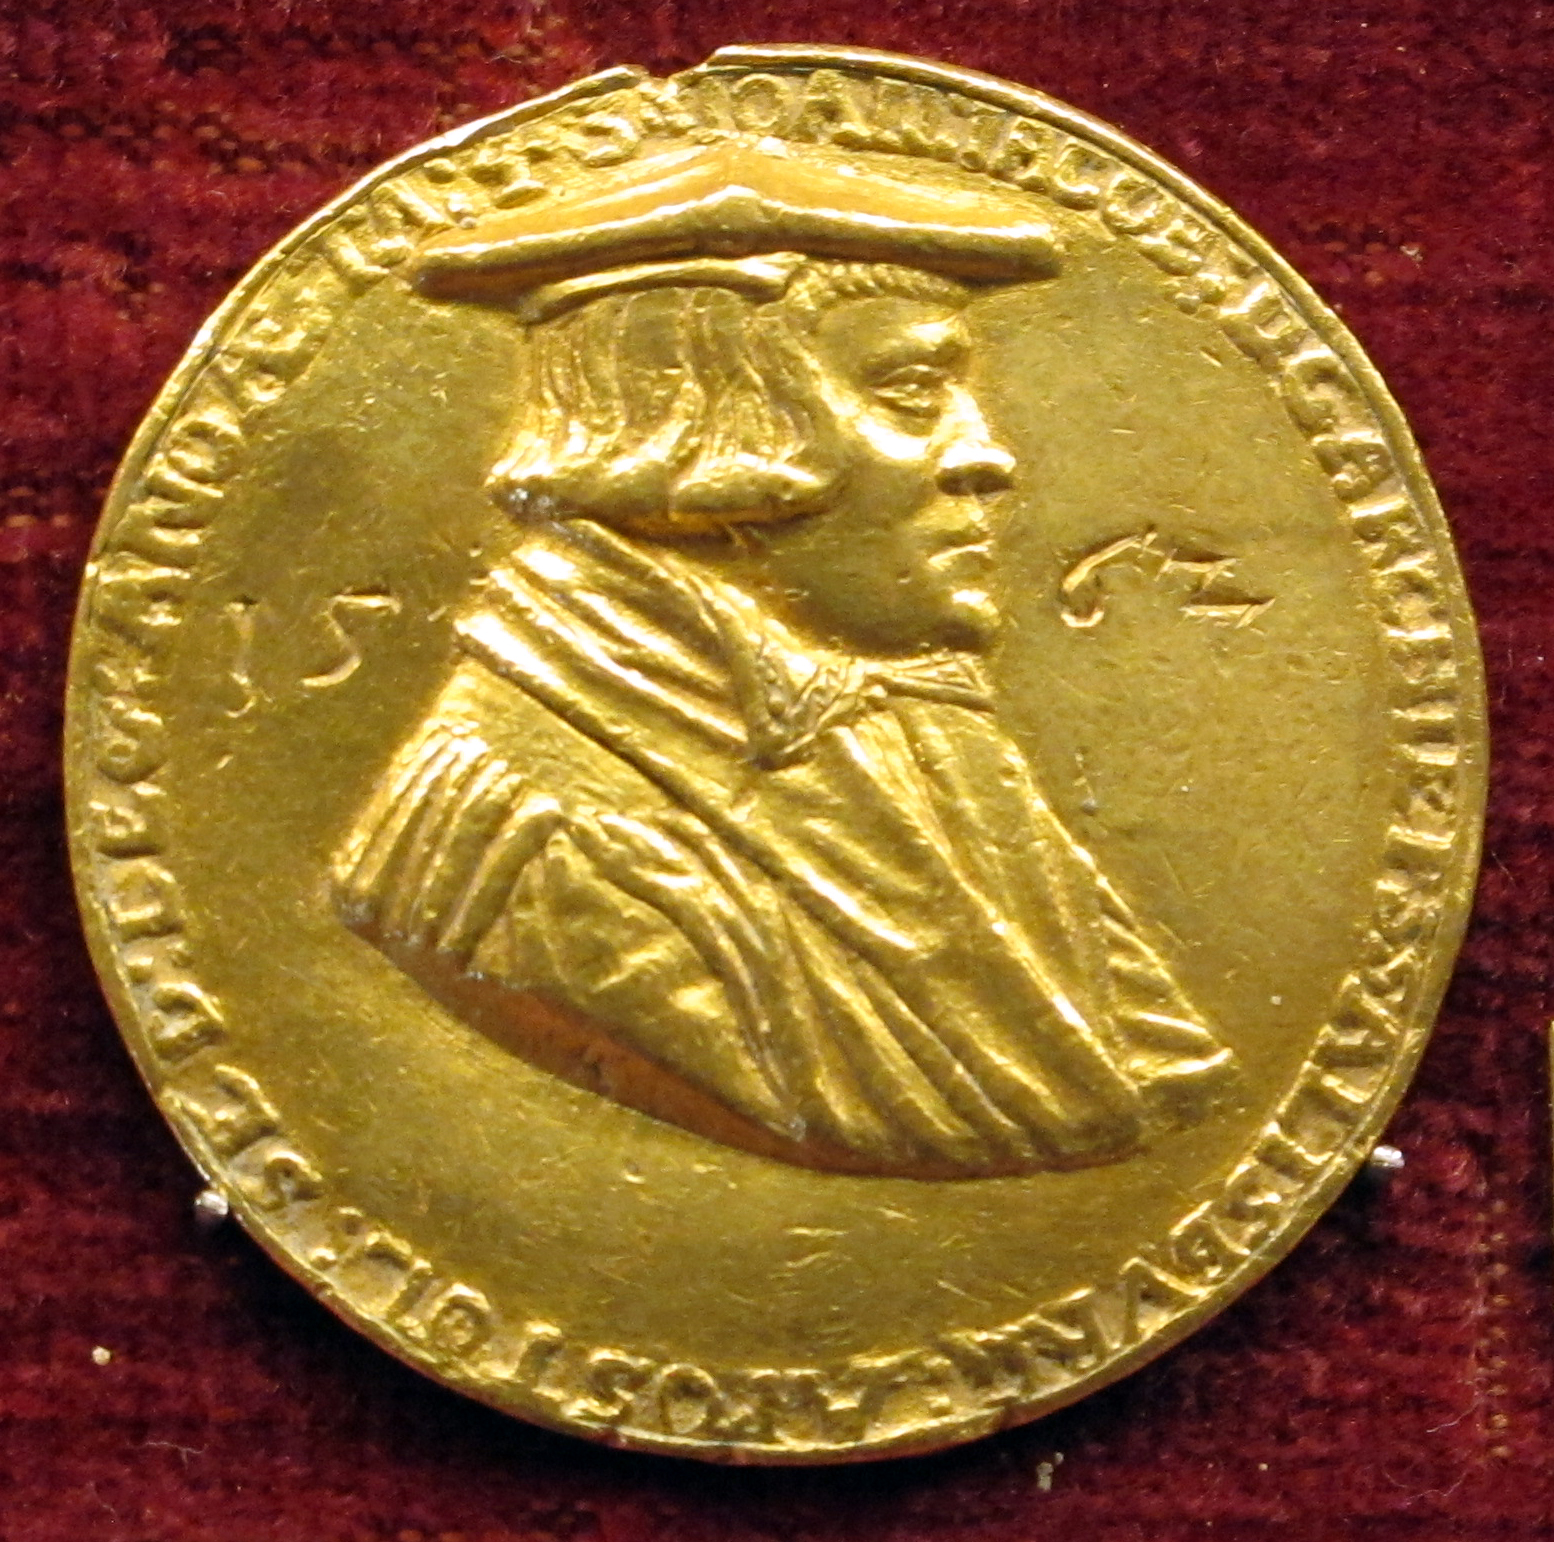 Medaille Johann Jakob Kuen Belasi 1562, FOTO: Sailko, LIZENZ:Creative Commons Attribution-Share Alike 3.0 Unported